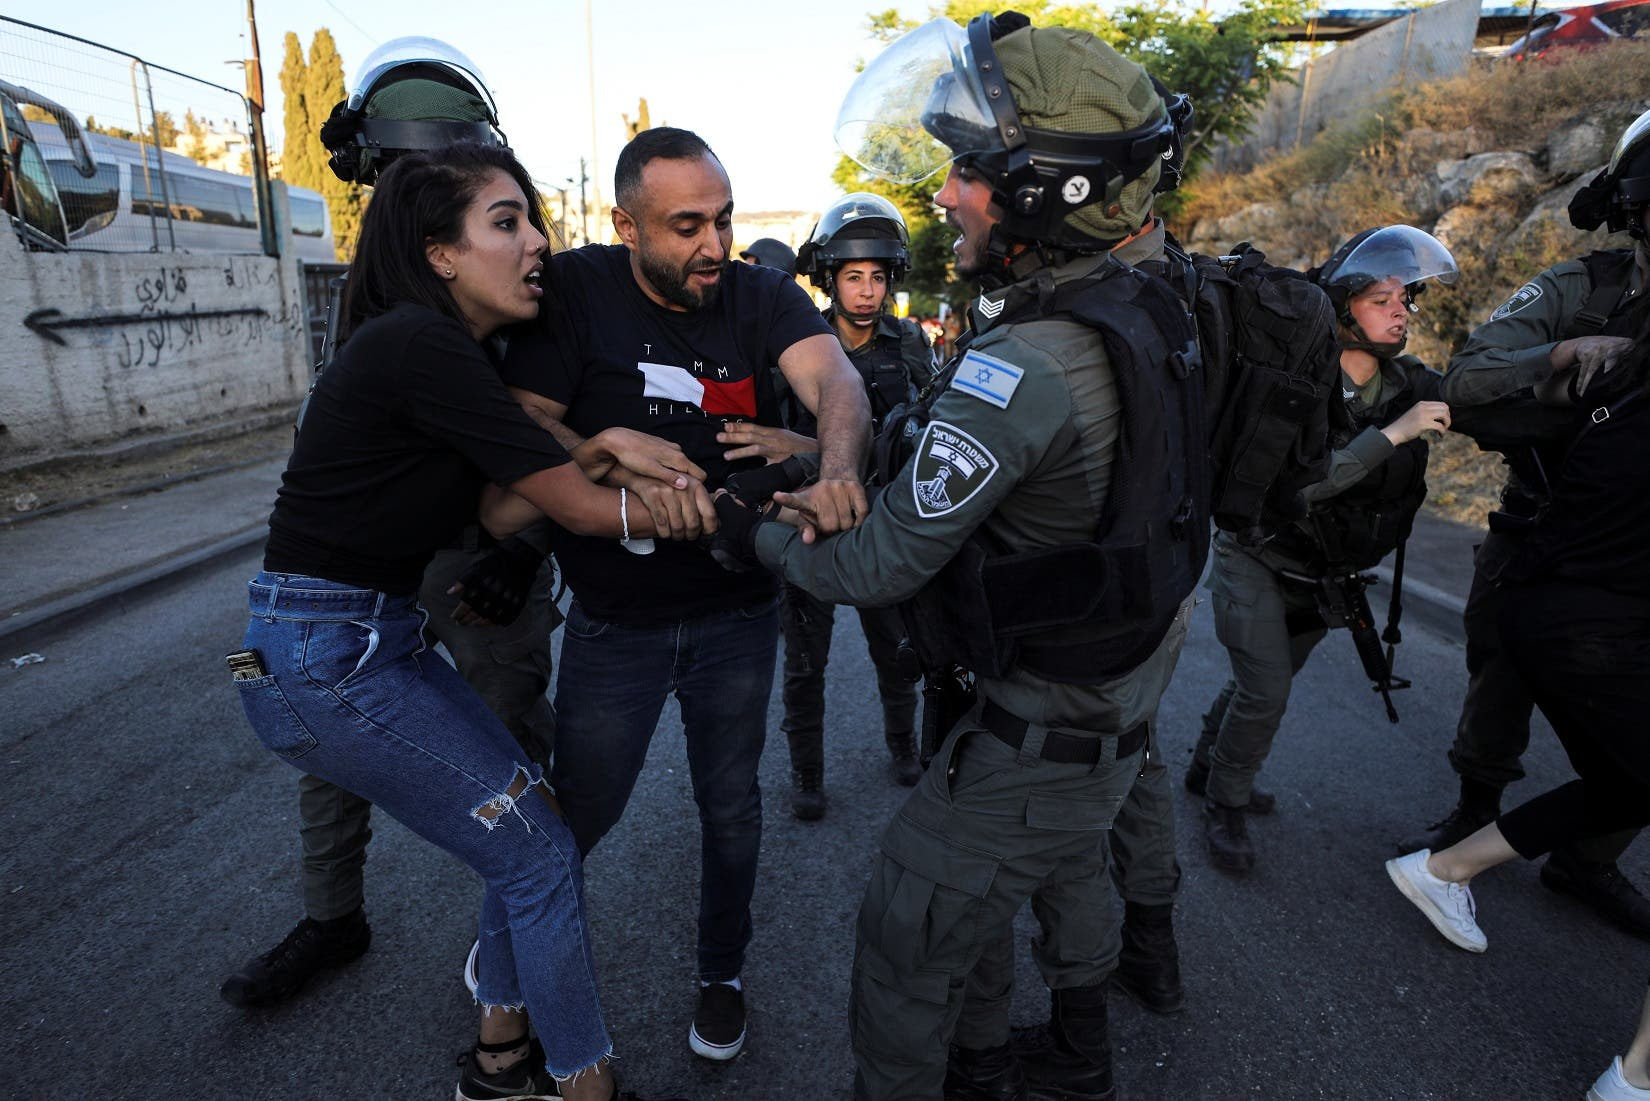 Israeli Border police officers scuffle with Palestinian protesters in East Jerusalem May 15, 2021. (Reuters)